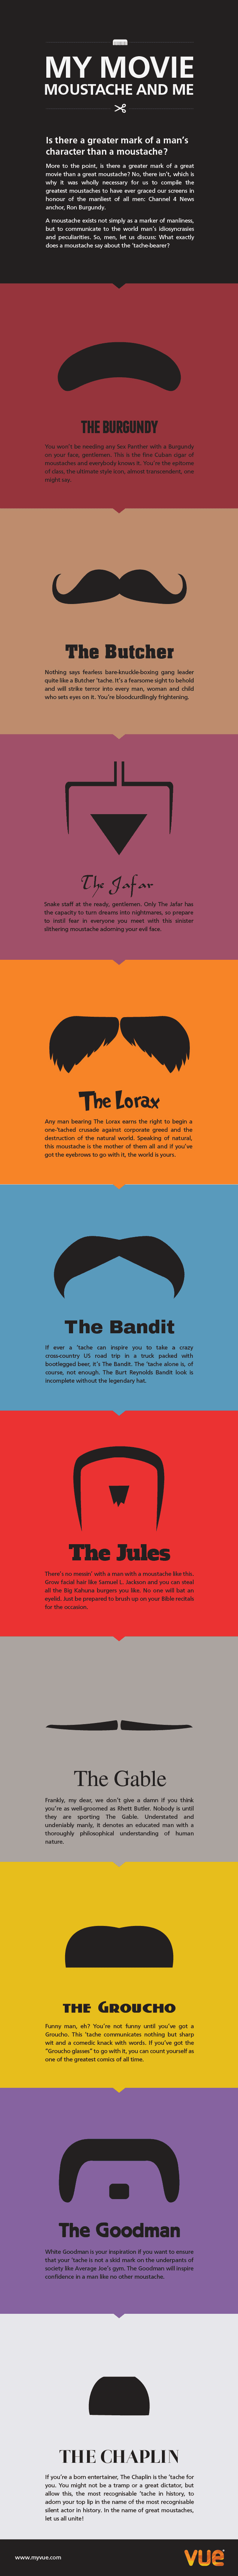 My Movie Moustache and Me [infographic]